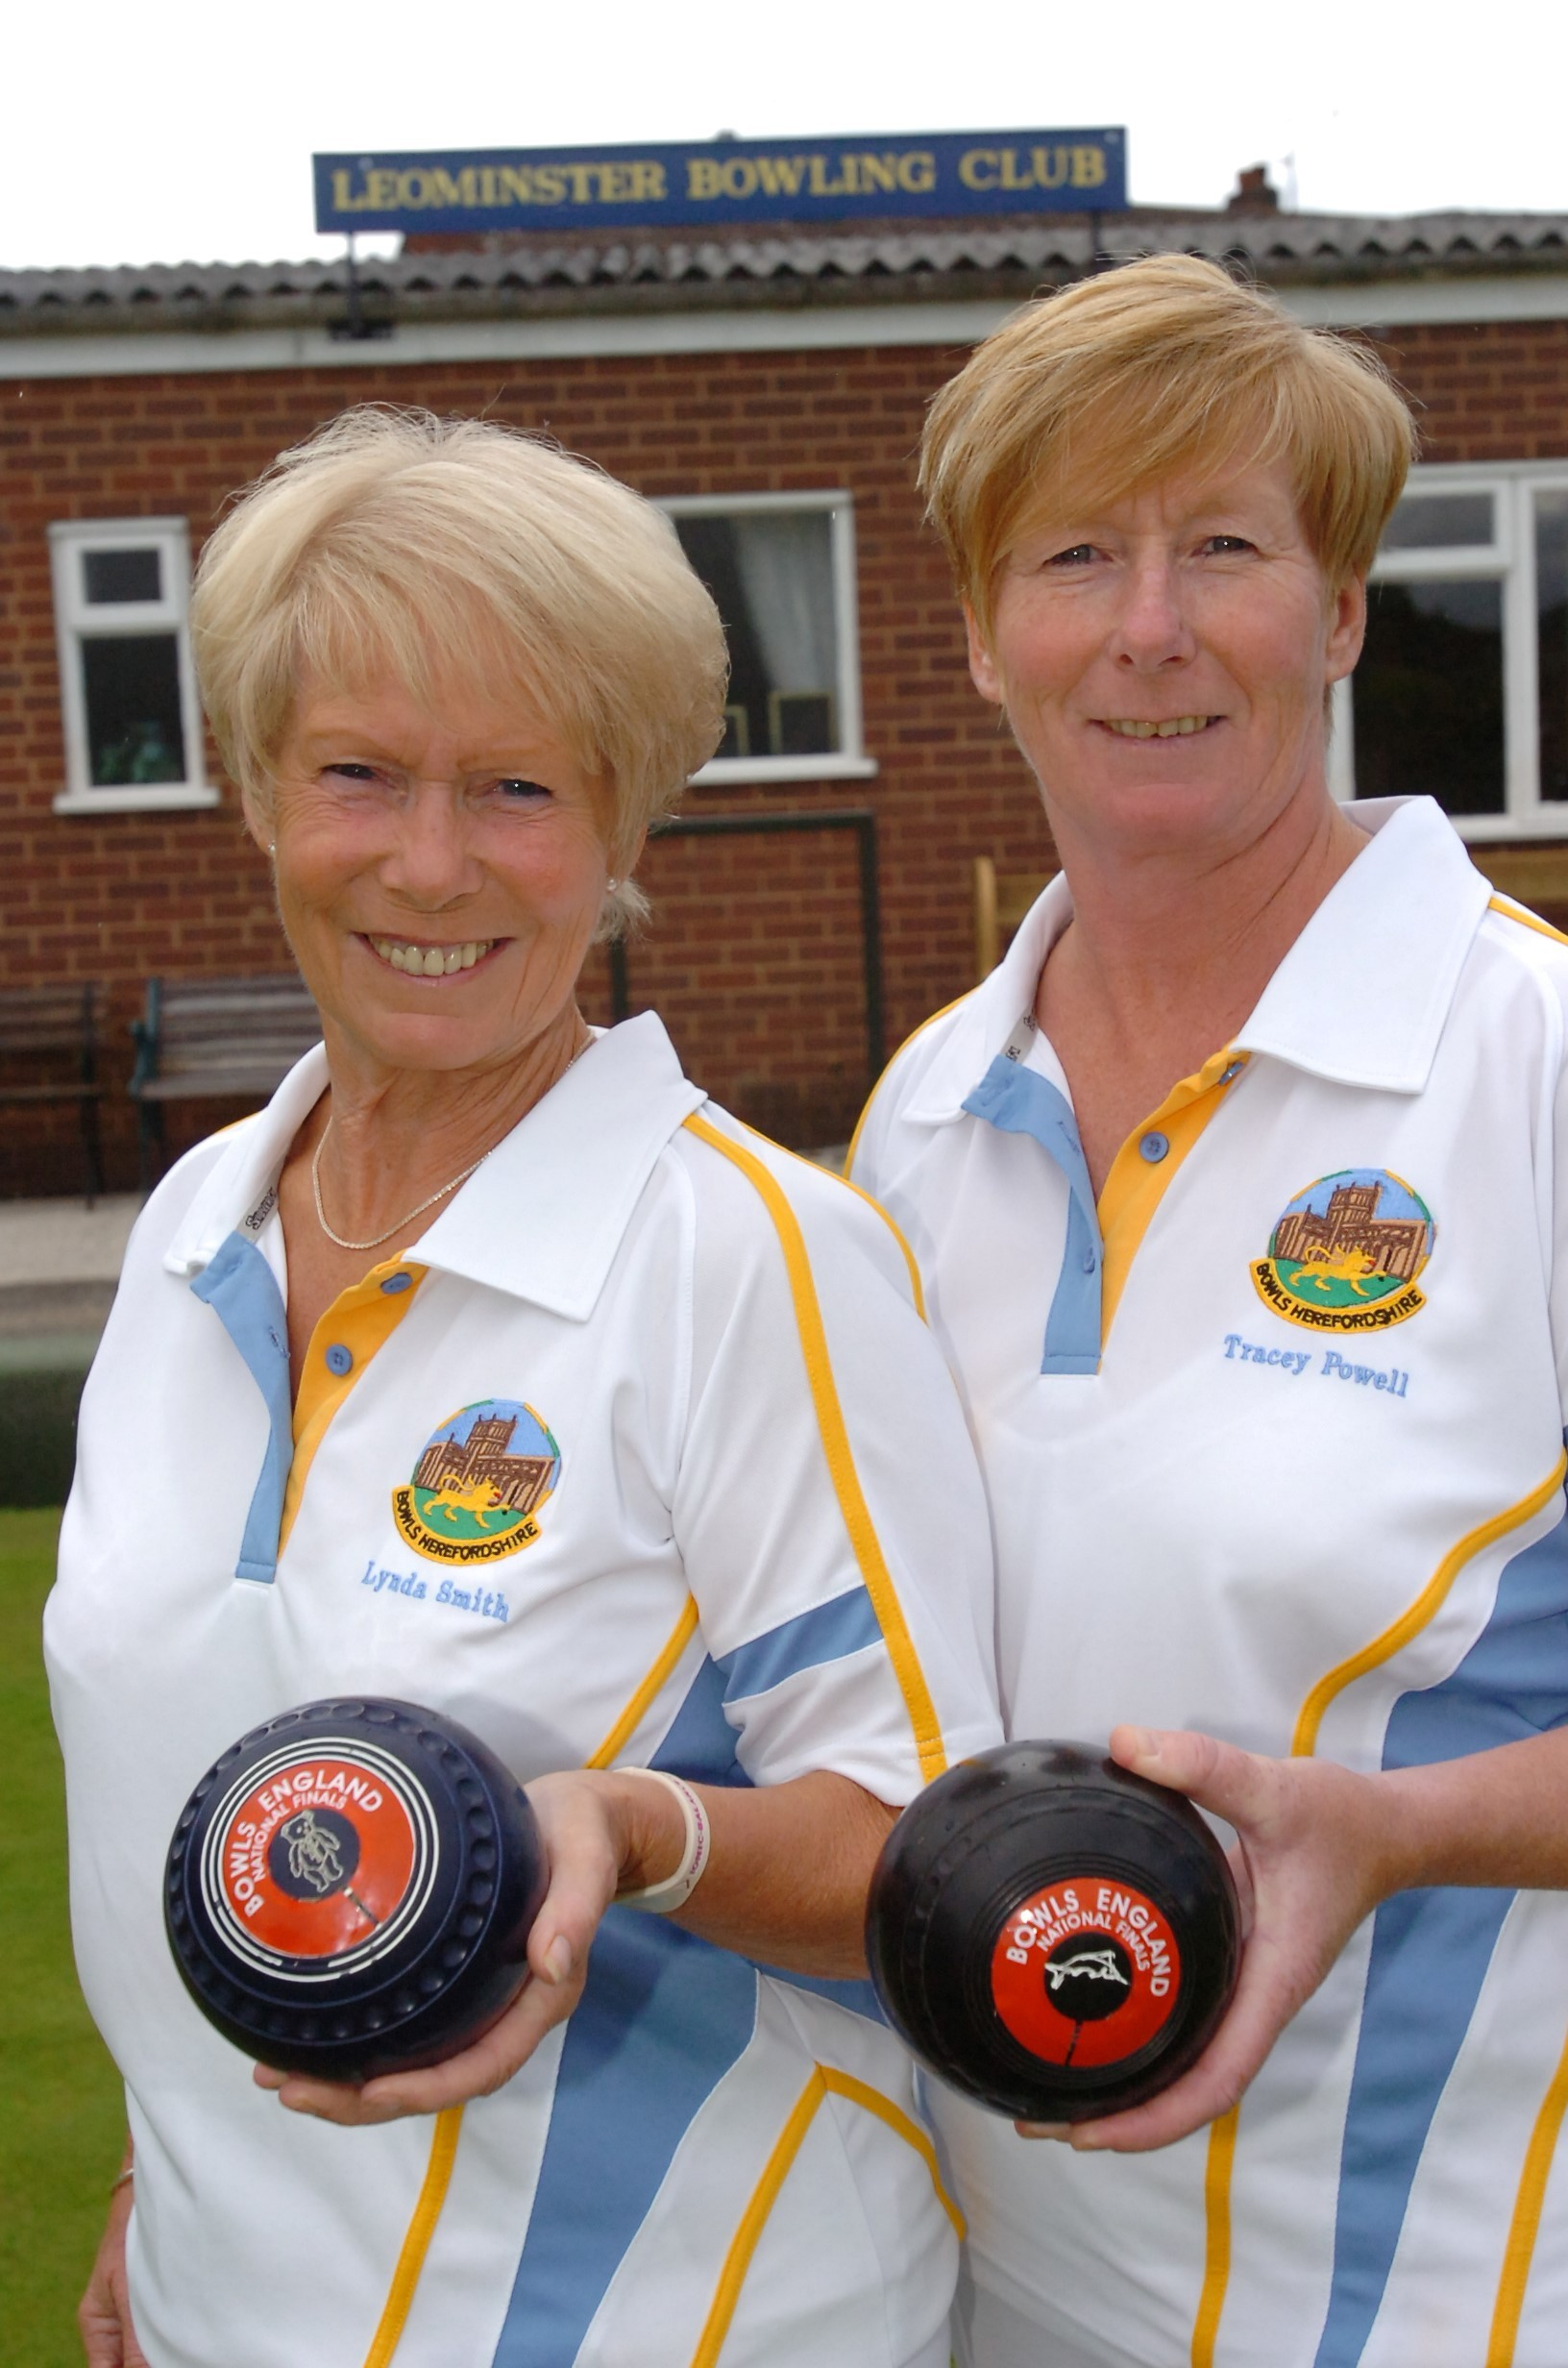 Leominster sisters regain national bowls title